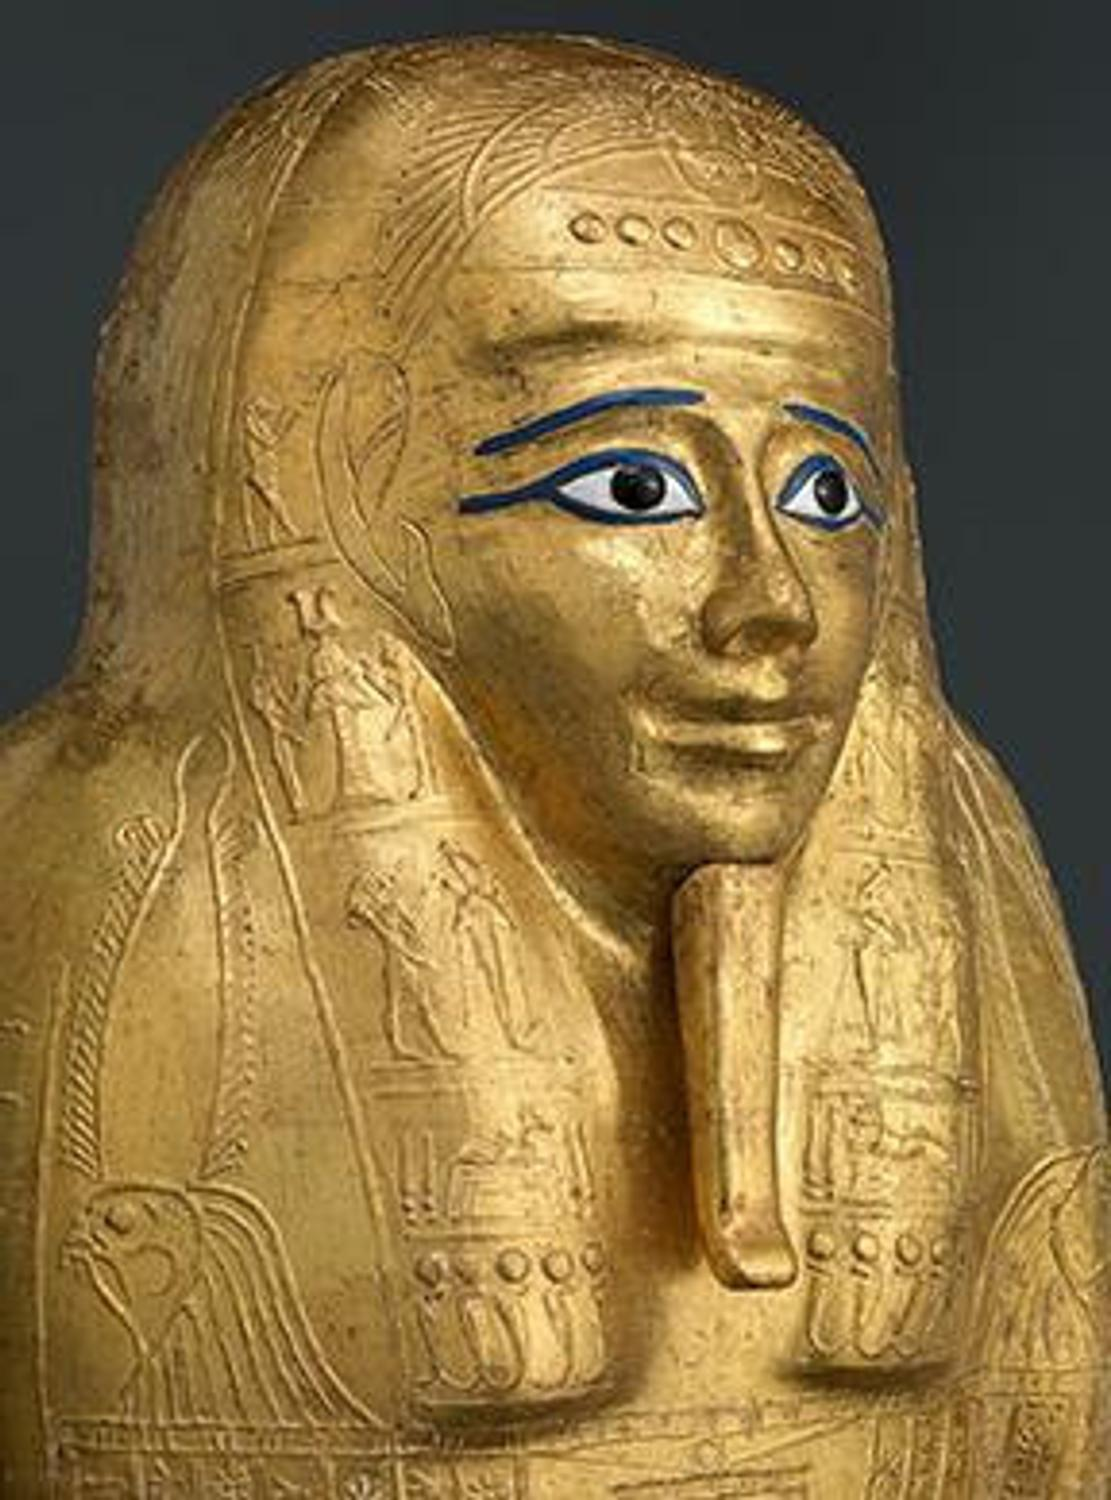 The Met Acquires Ancient Egyptian Gilded Coffin Artwire